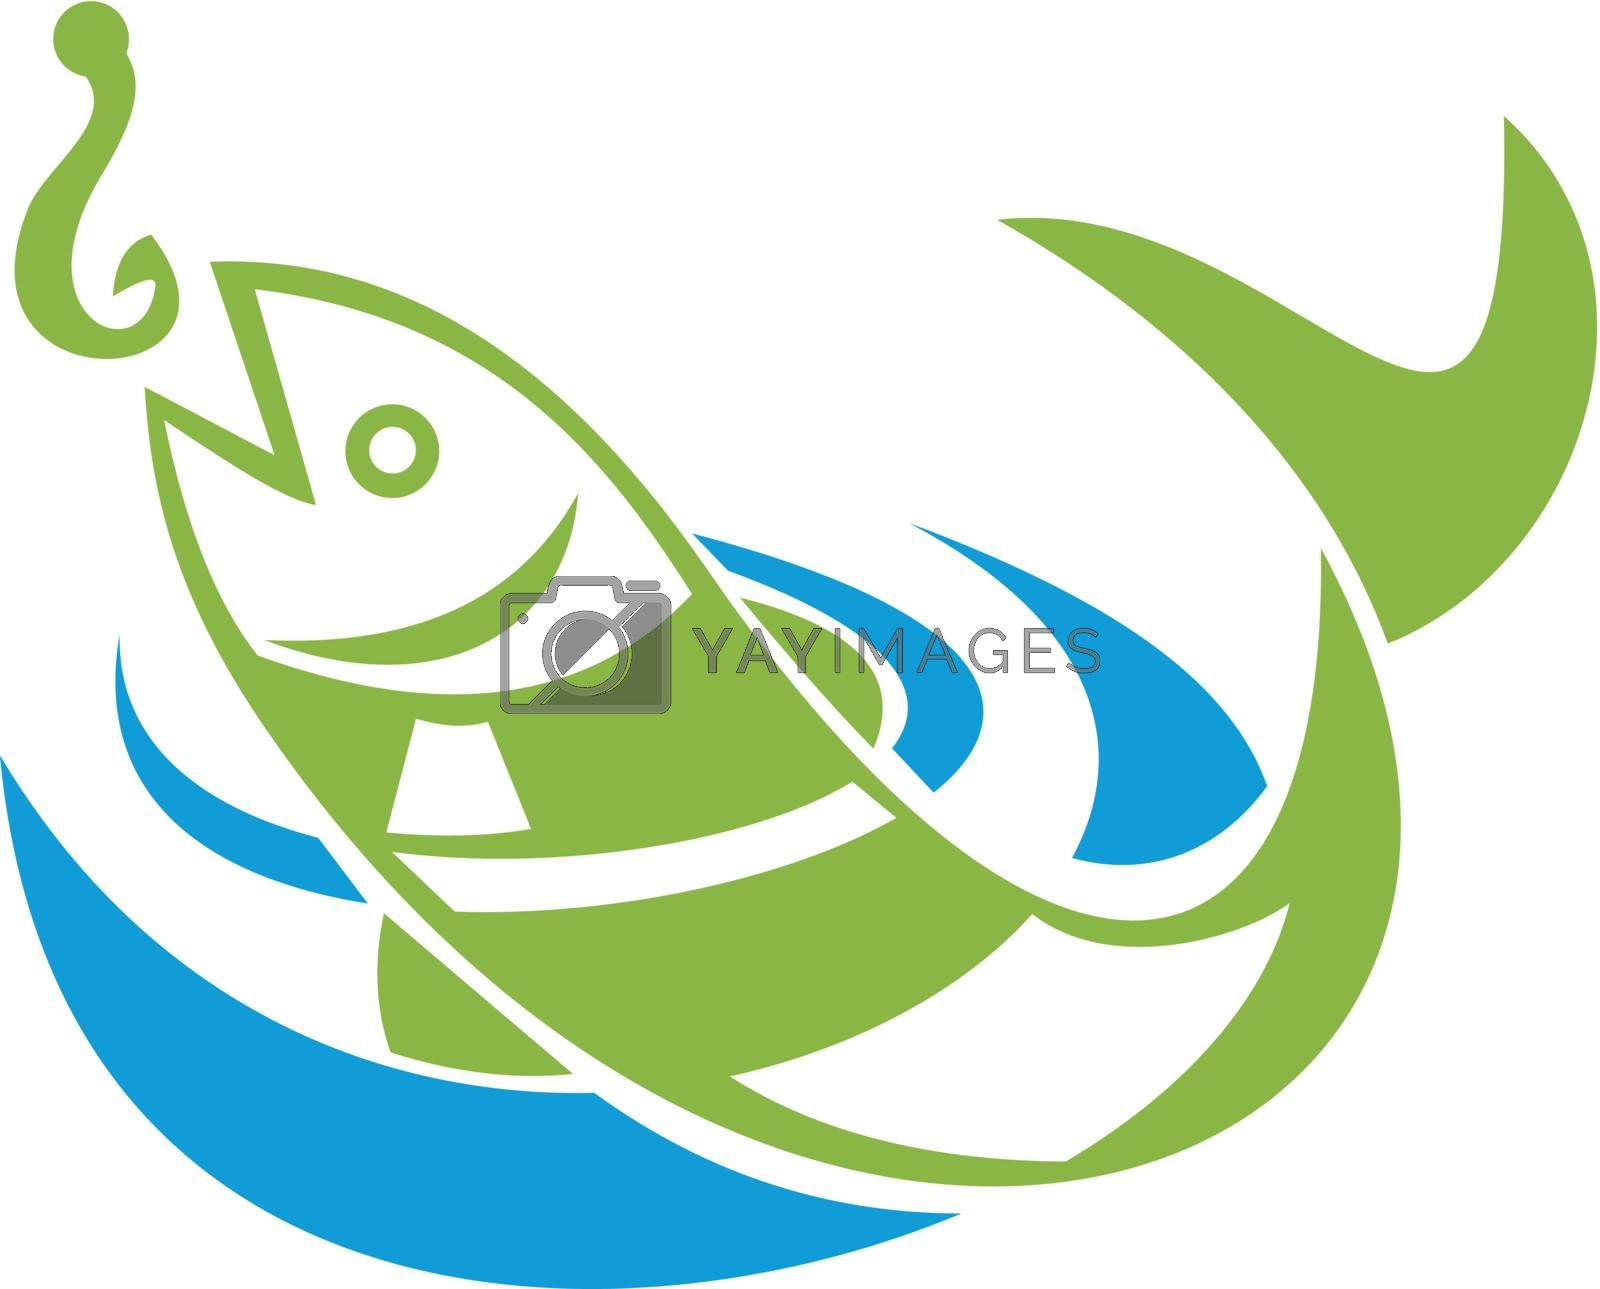 Retro illustration of a fish jumping for bait hook on isolated white background.